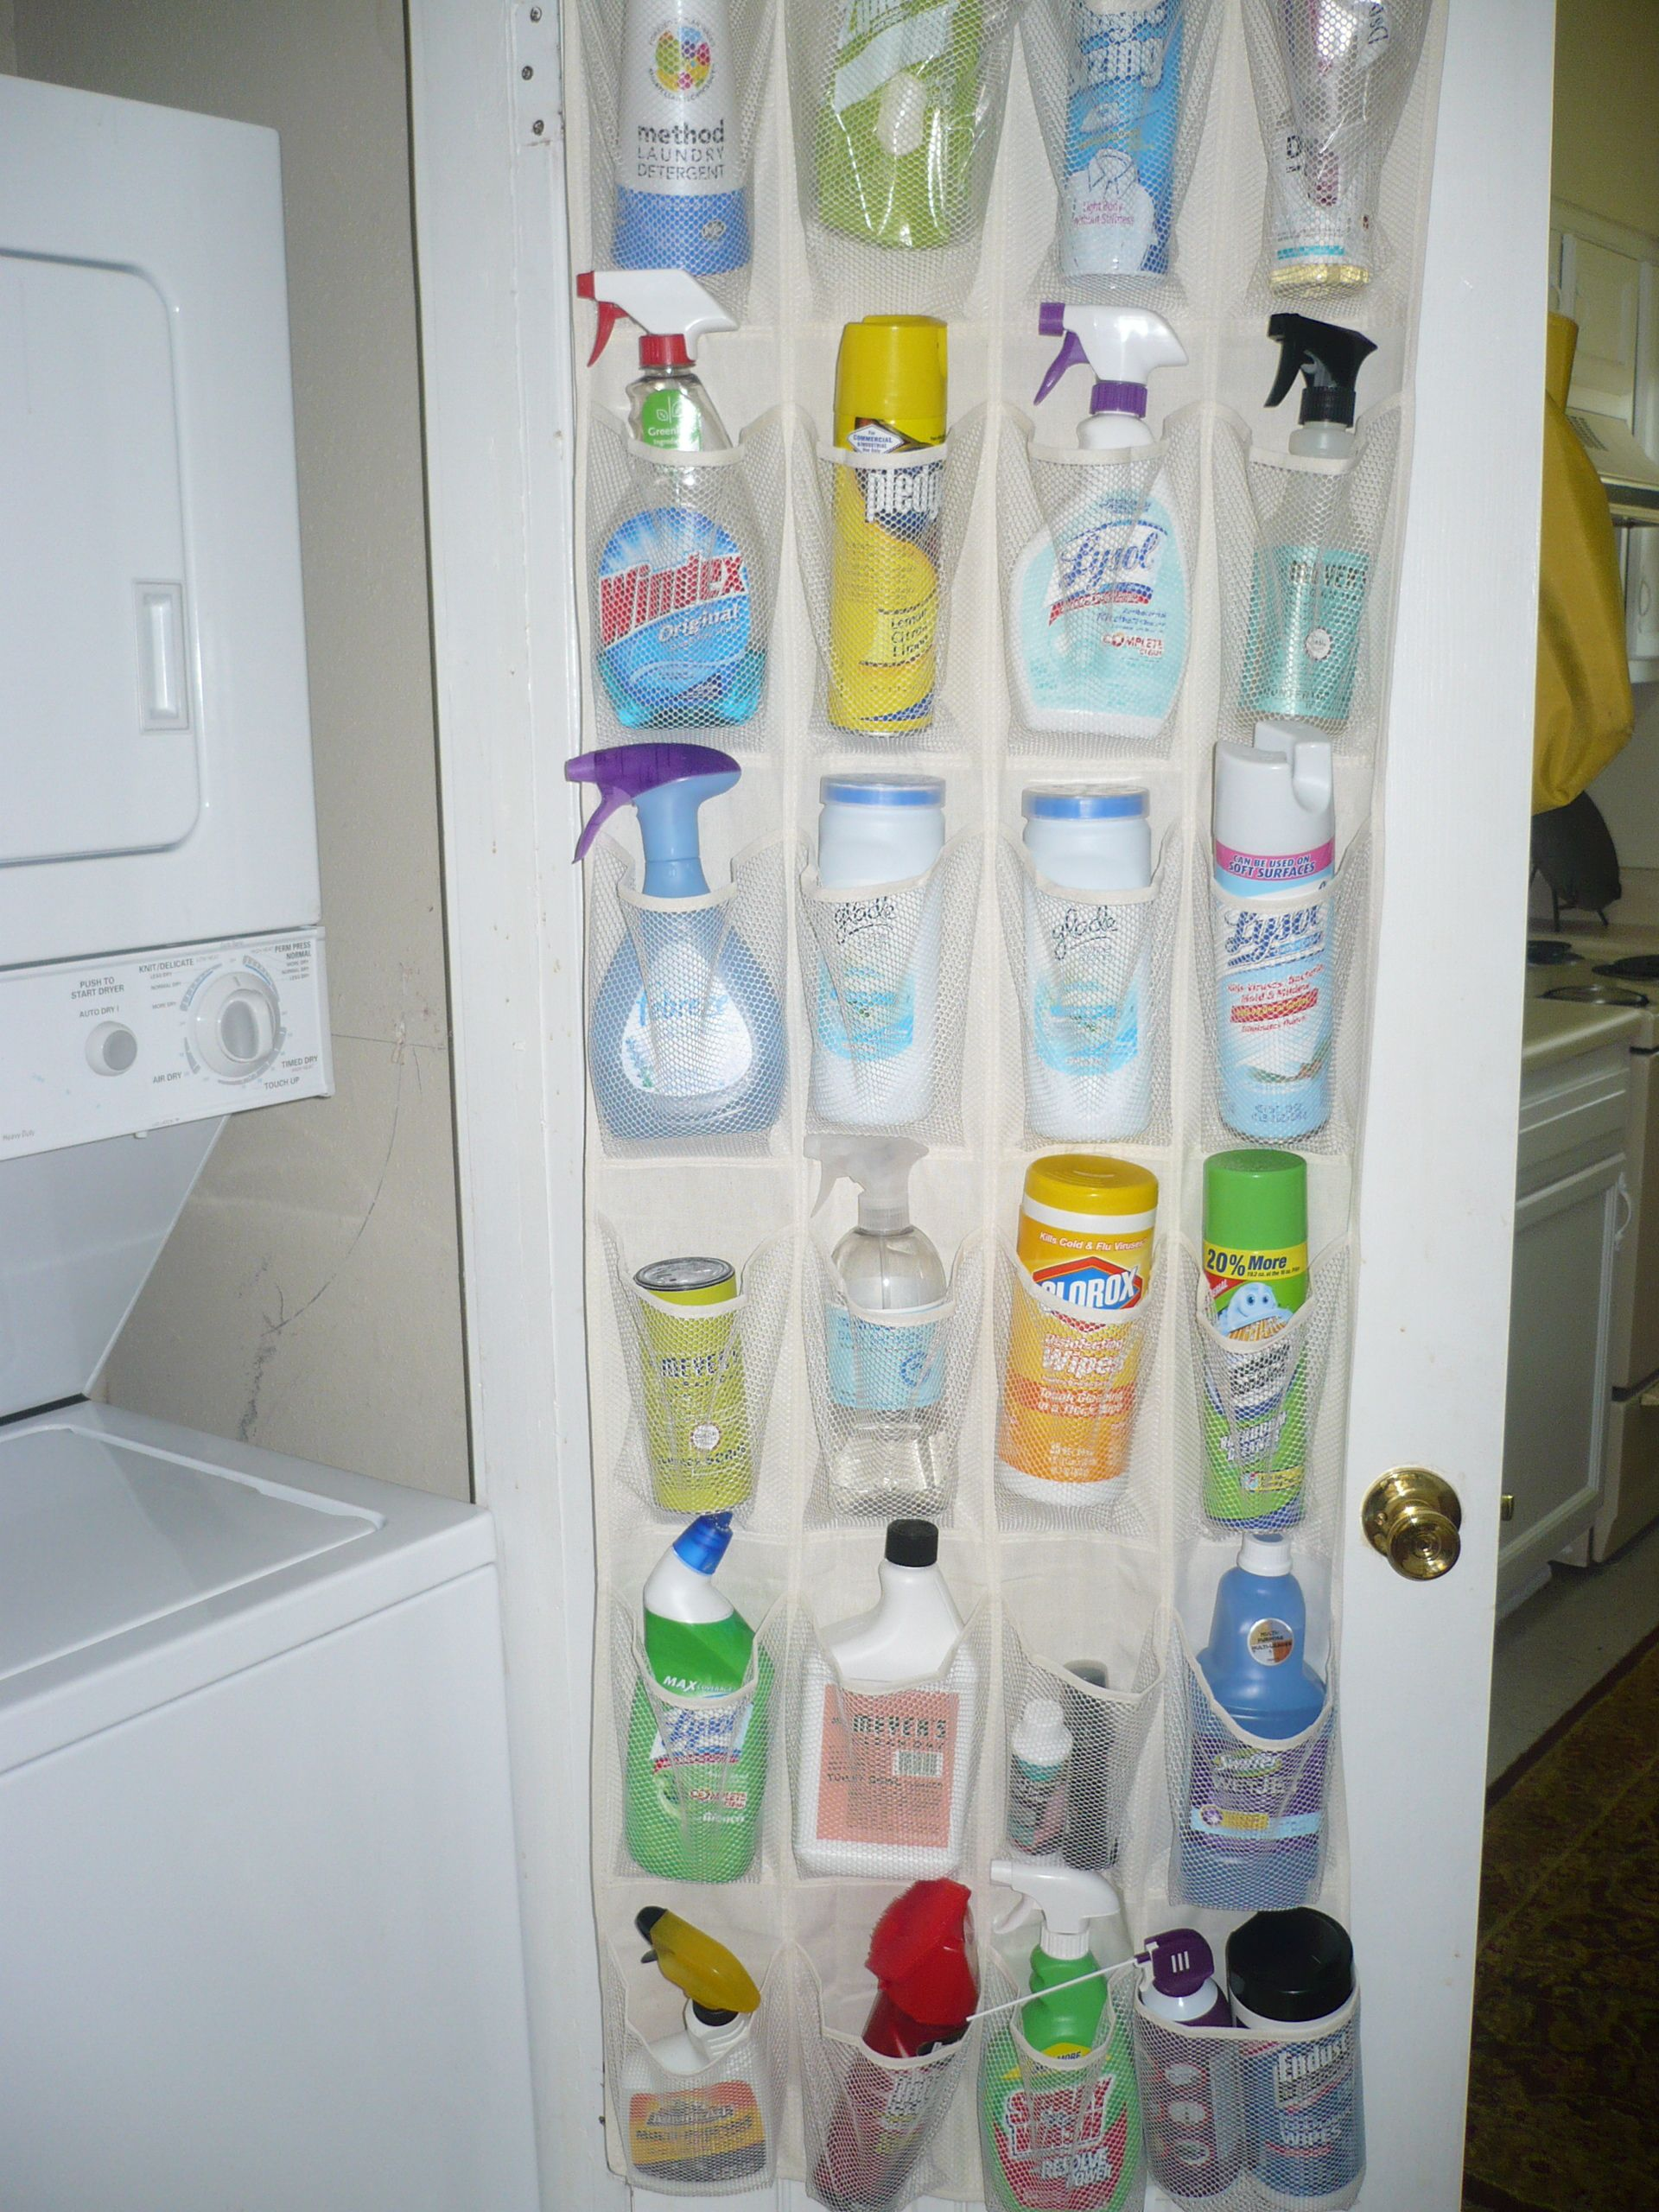 I Hope Never To Own This Many Cleaning Products But This Is A